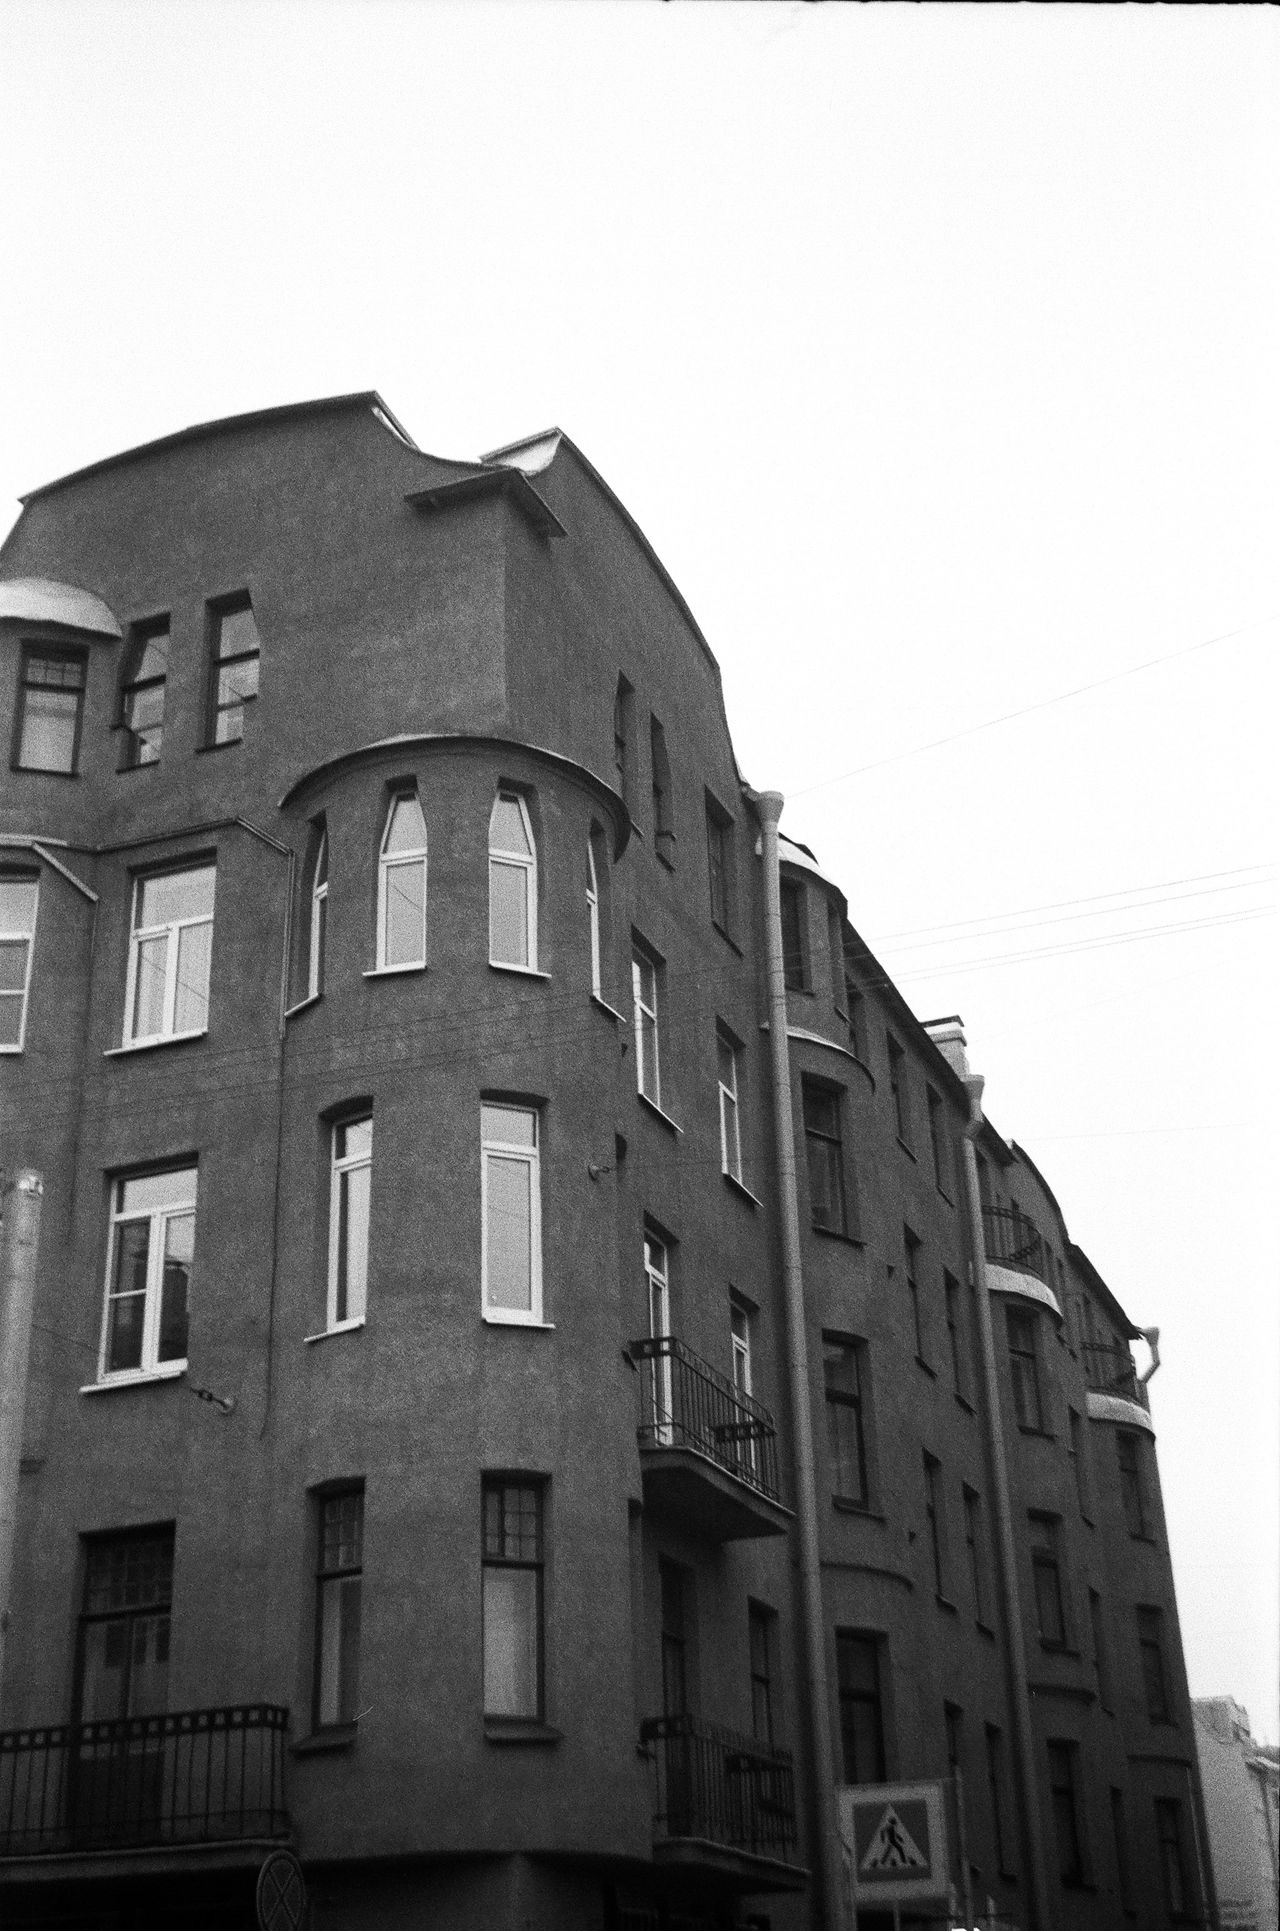 Architecture Building Exterior Built Structure Window Apartment Façade Exterior Tower Branches Streets Monochrome Photgraphy Saintpetersburg FiftyShadesOfGrey Blackandwhite Monochrome Doublecolors 50shadesofgrey Facades SlideBlack And White Grayscale Bandw Anticolors Fiftyshades Shadow